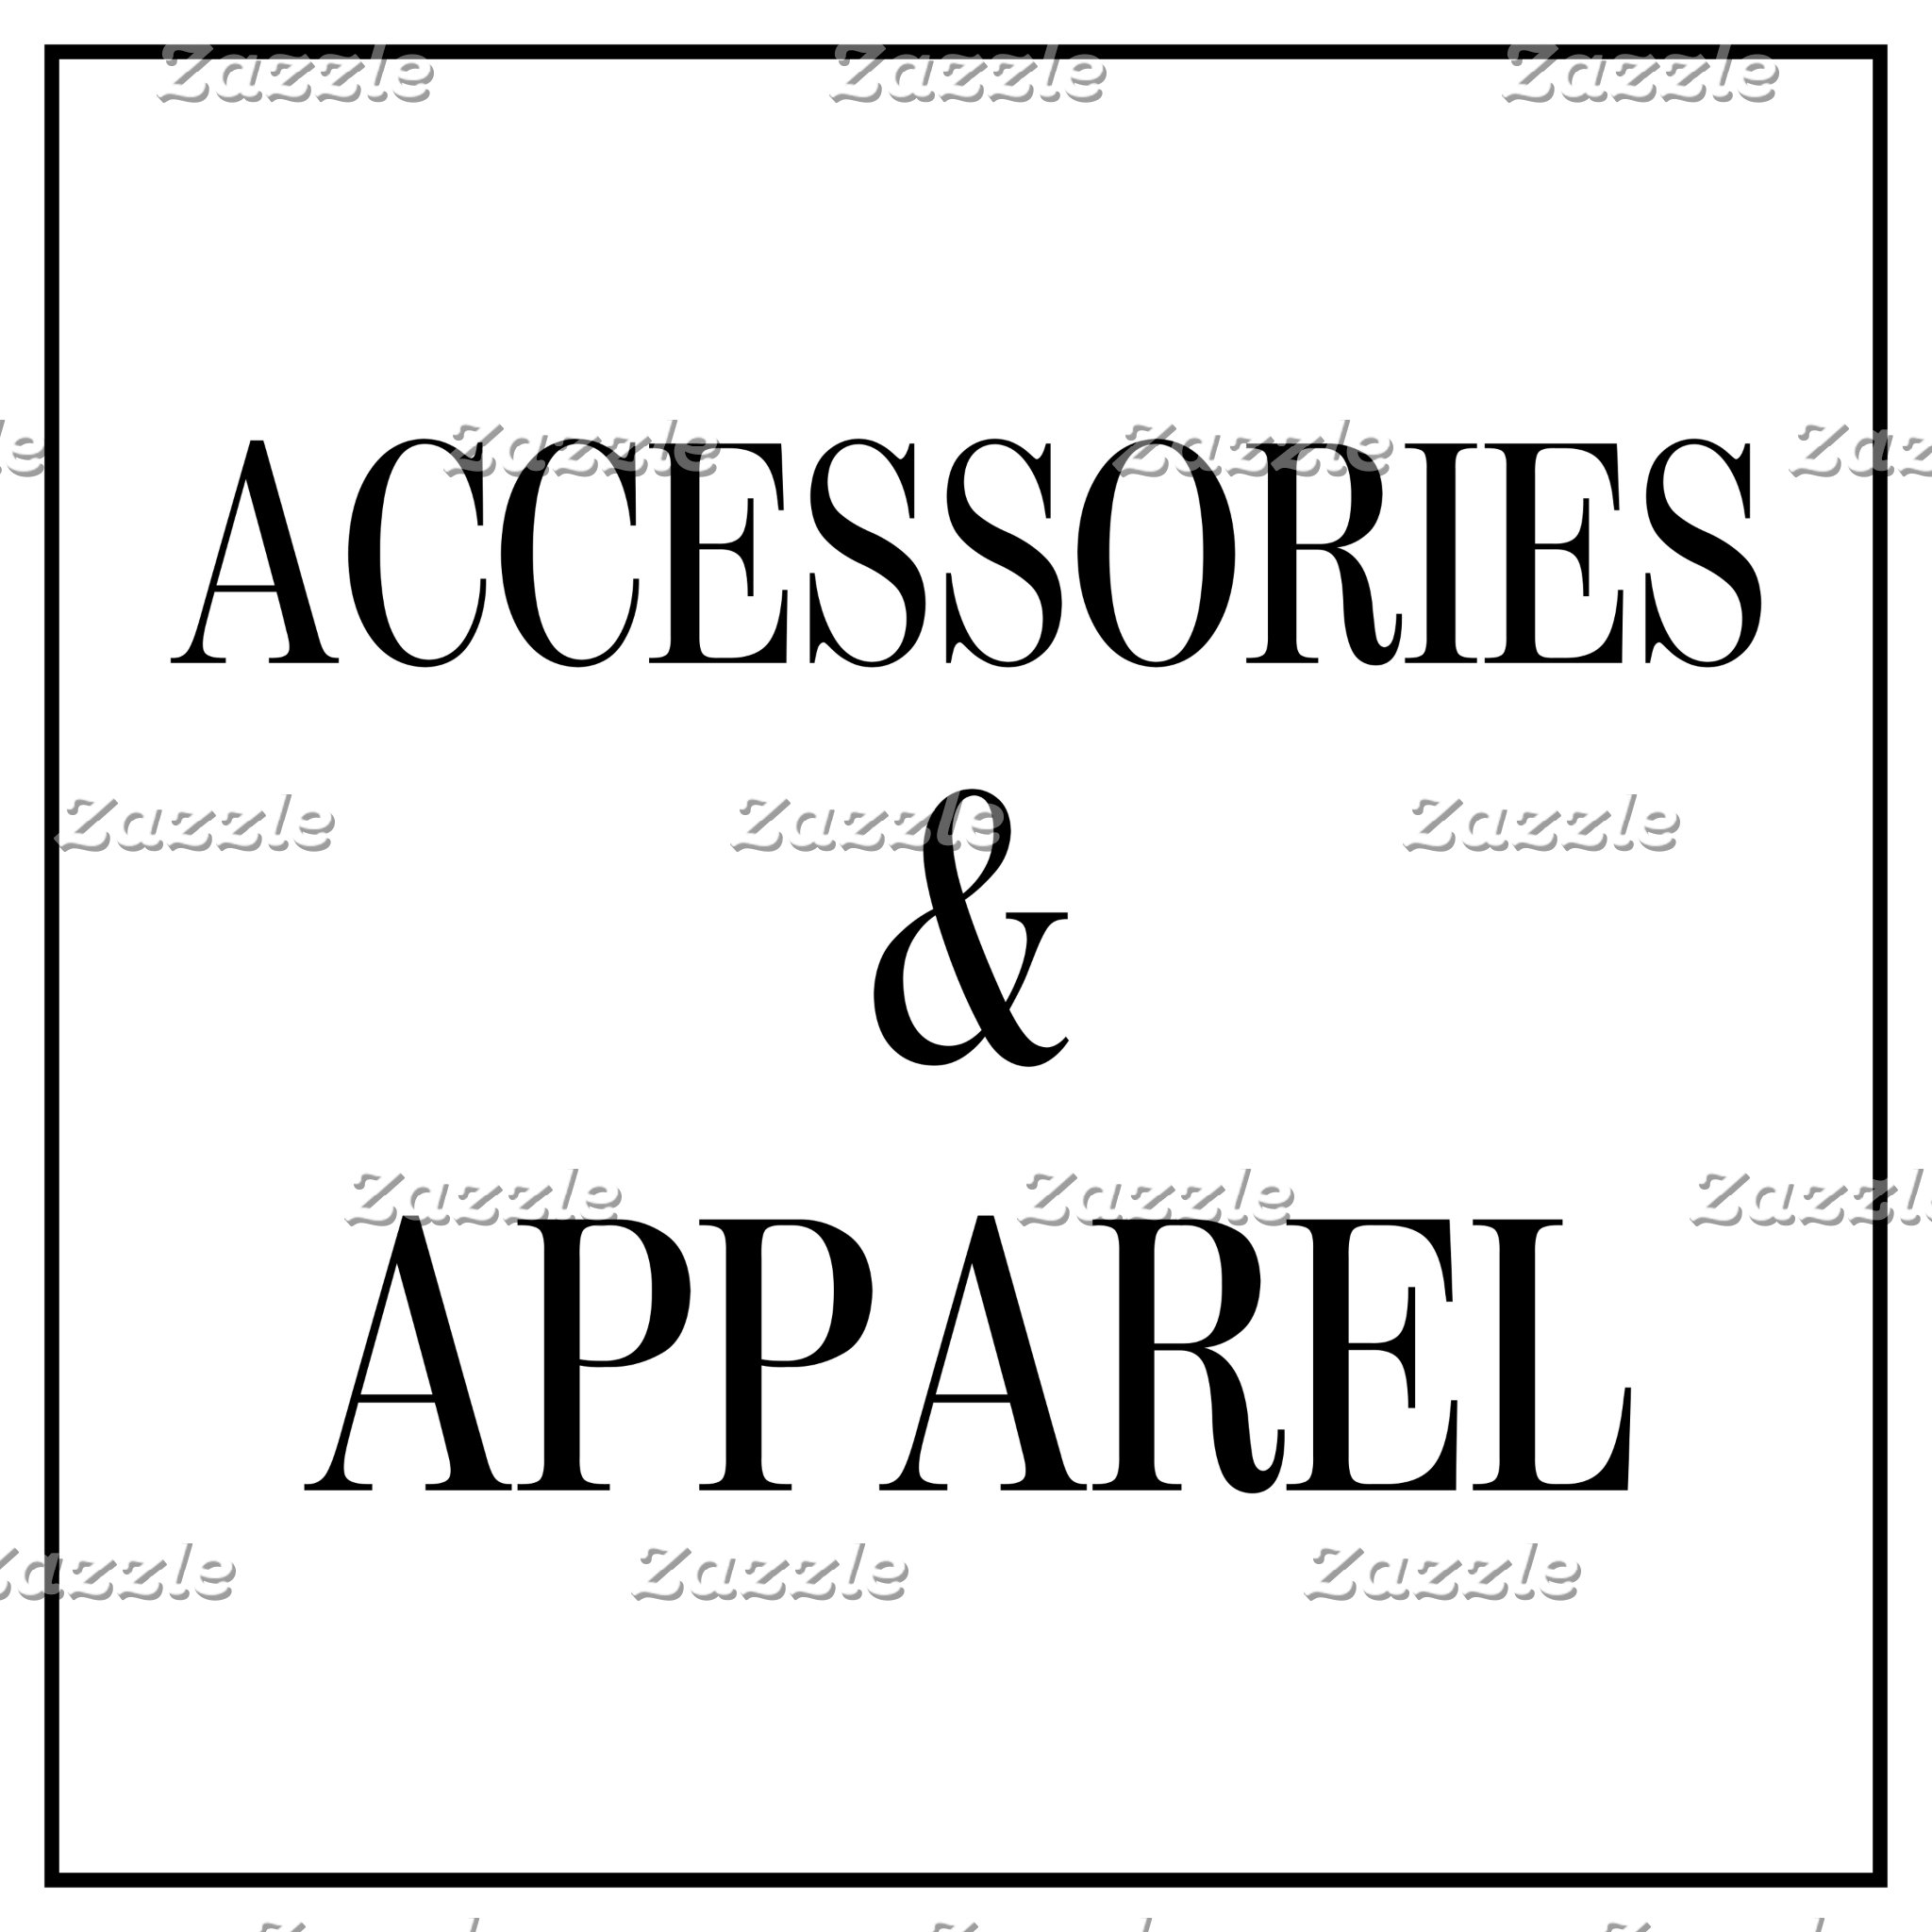 Accessories & Apparel